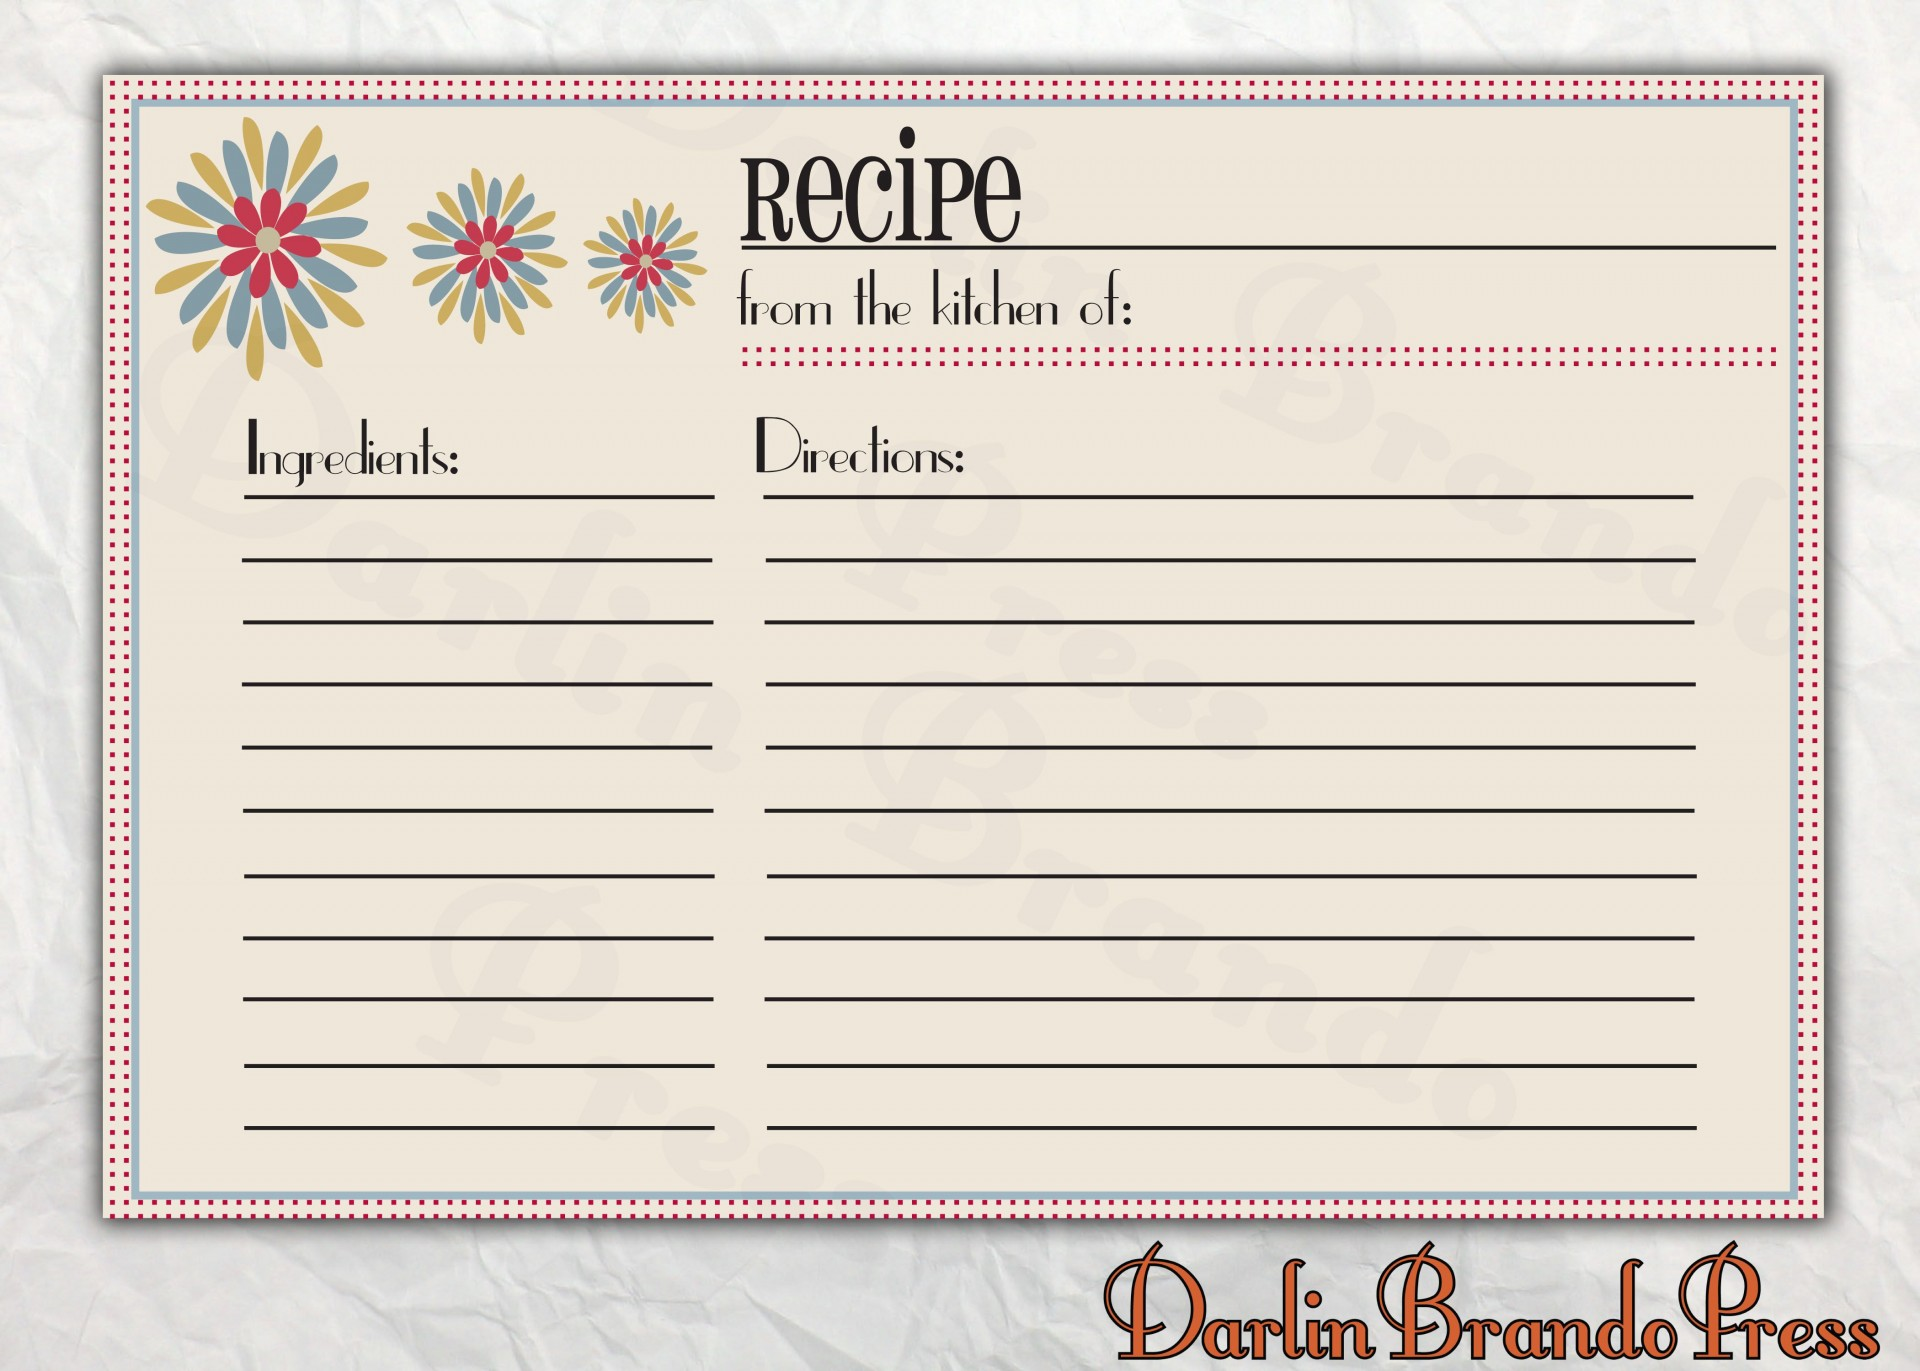 006 Formidable Fillable Recipe Card Template Idea  For Word Free1920